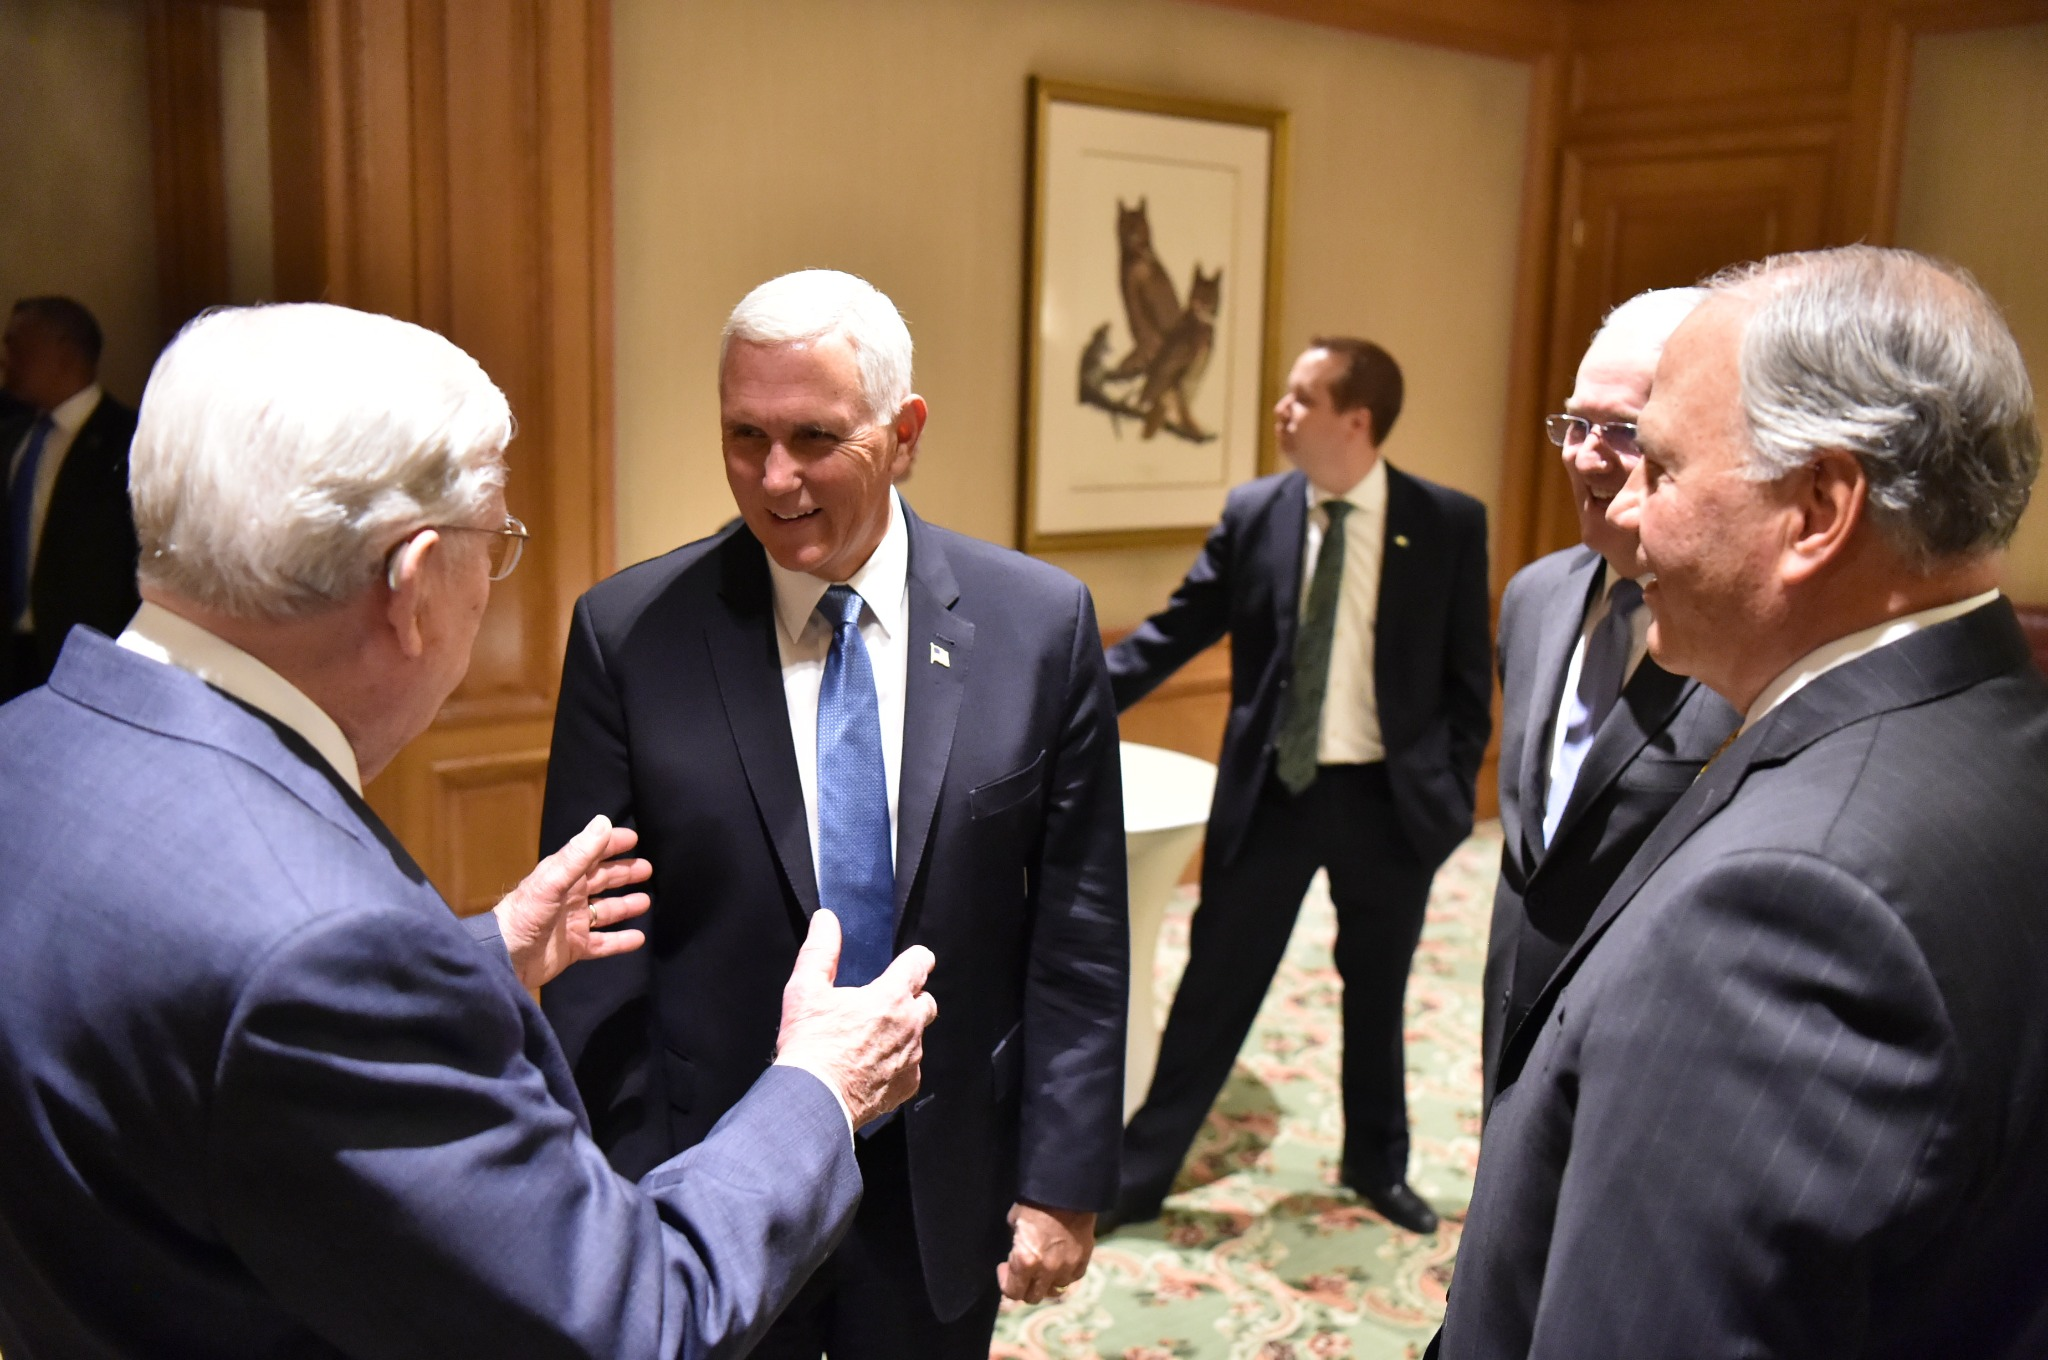 President M. Russell Ballard, acting president of the Quorum of the Twelve Apostles, left, speaks with U.S. Vice President Mike Pence during a brief meeting Thursday, Aug. 22, 2019, at Grand America Hotel in Salt Lake City. At right are Elder Jack N. Gerard, a General Authority Seventy, and Elder Ronald A. Rasband, member of the Quorum of the Twelve Apostles.